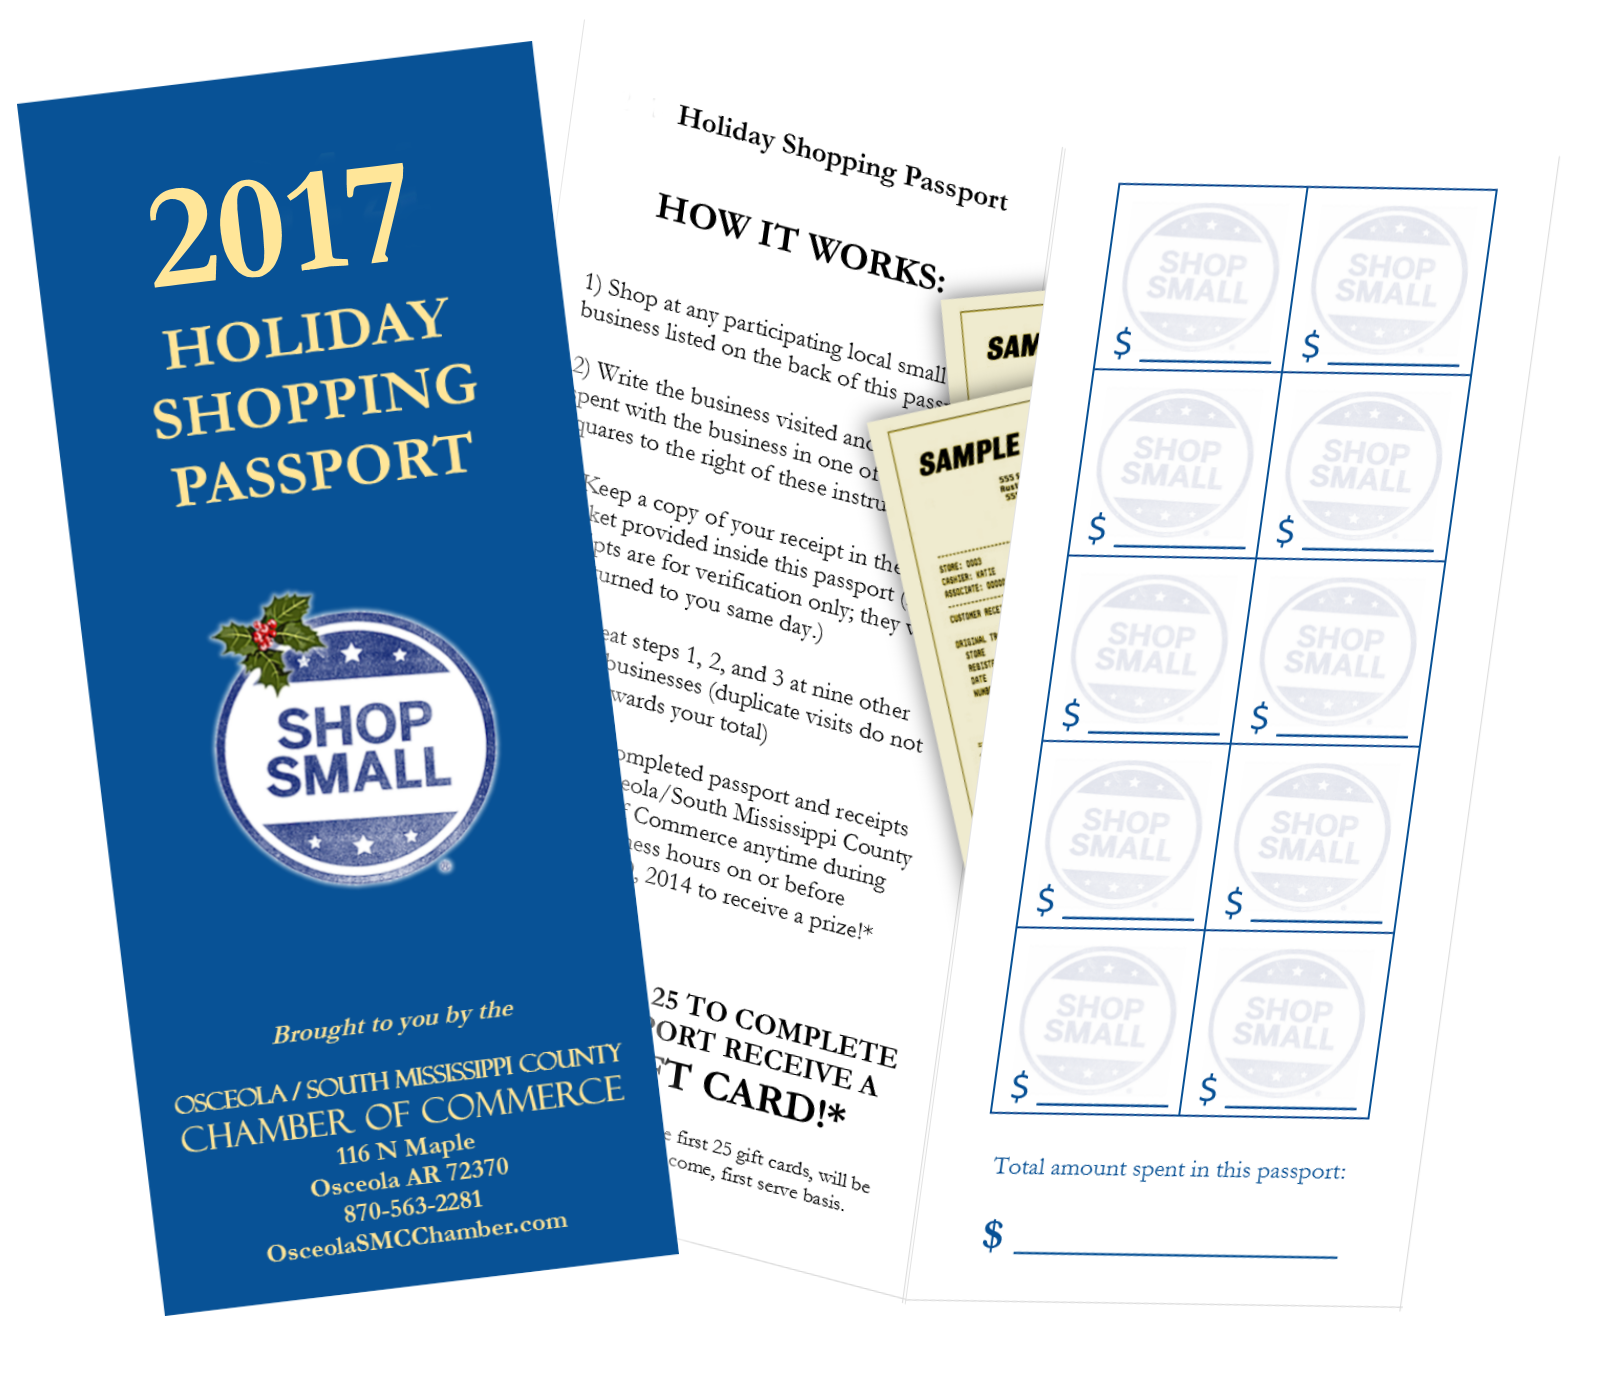 SAMPLE PASSPORT NEWSLETTER2017